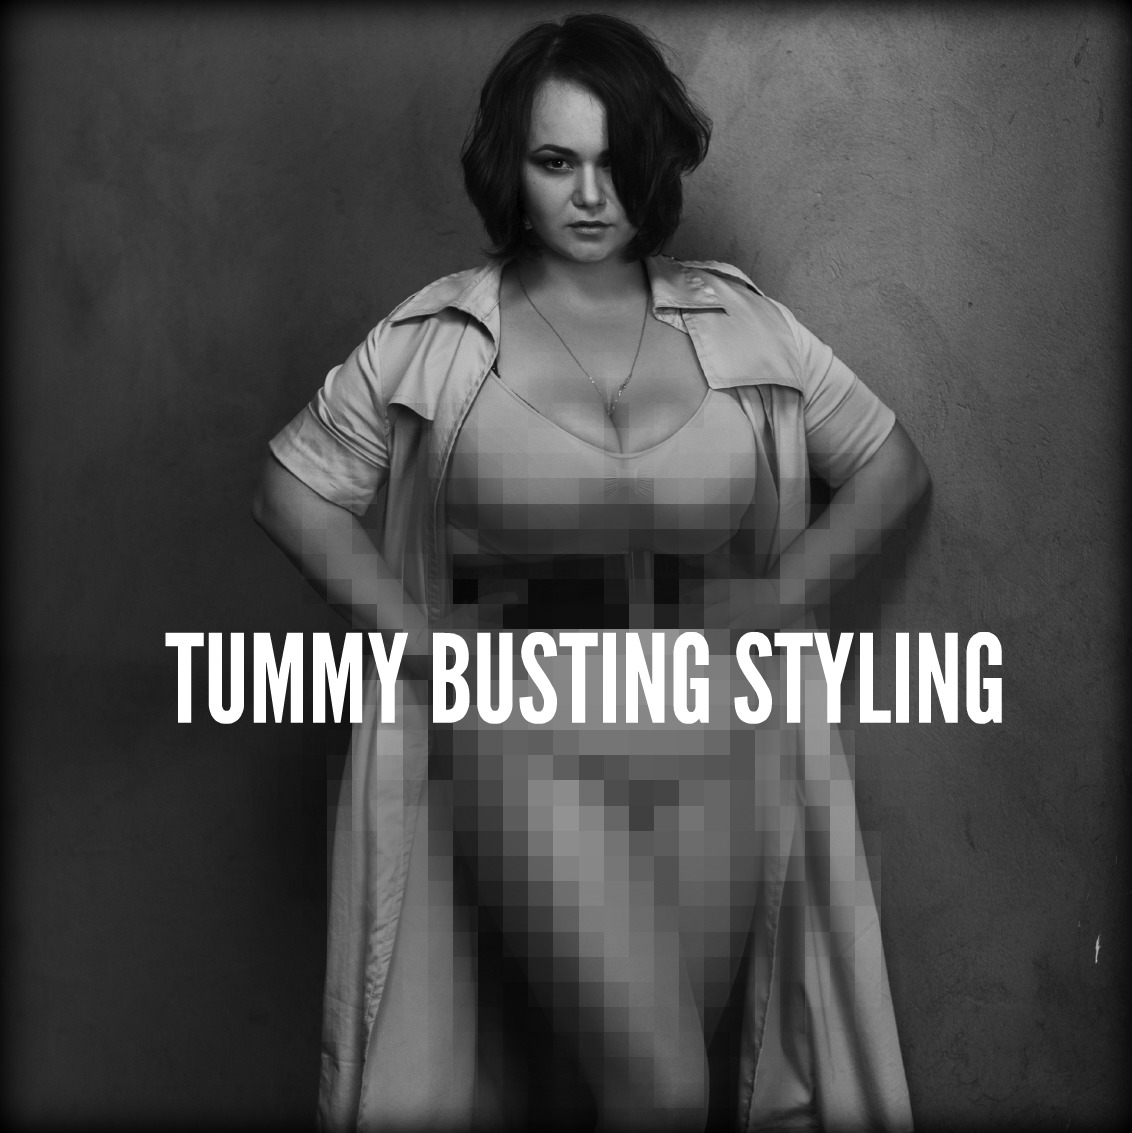 TUMMY BUSTING STYLING